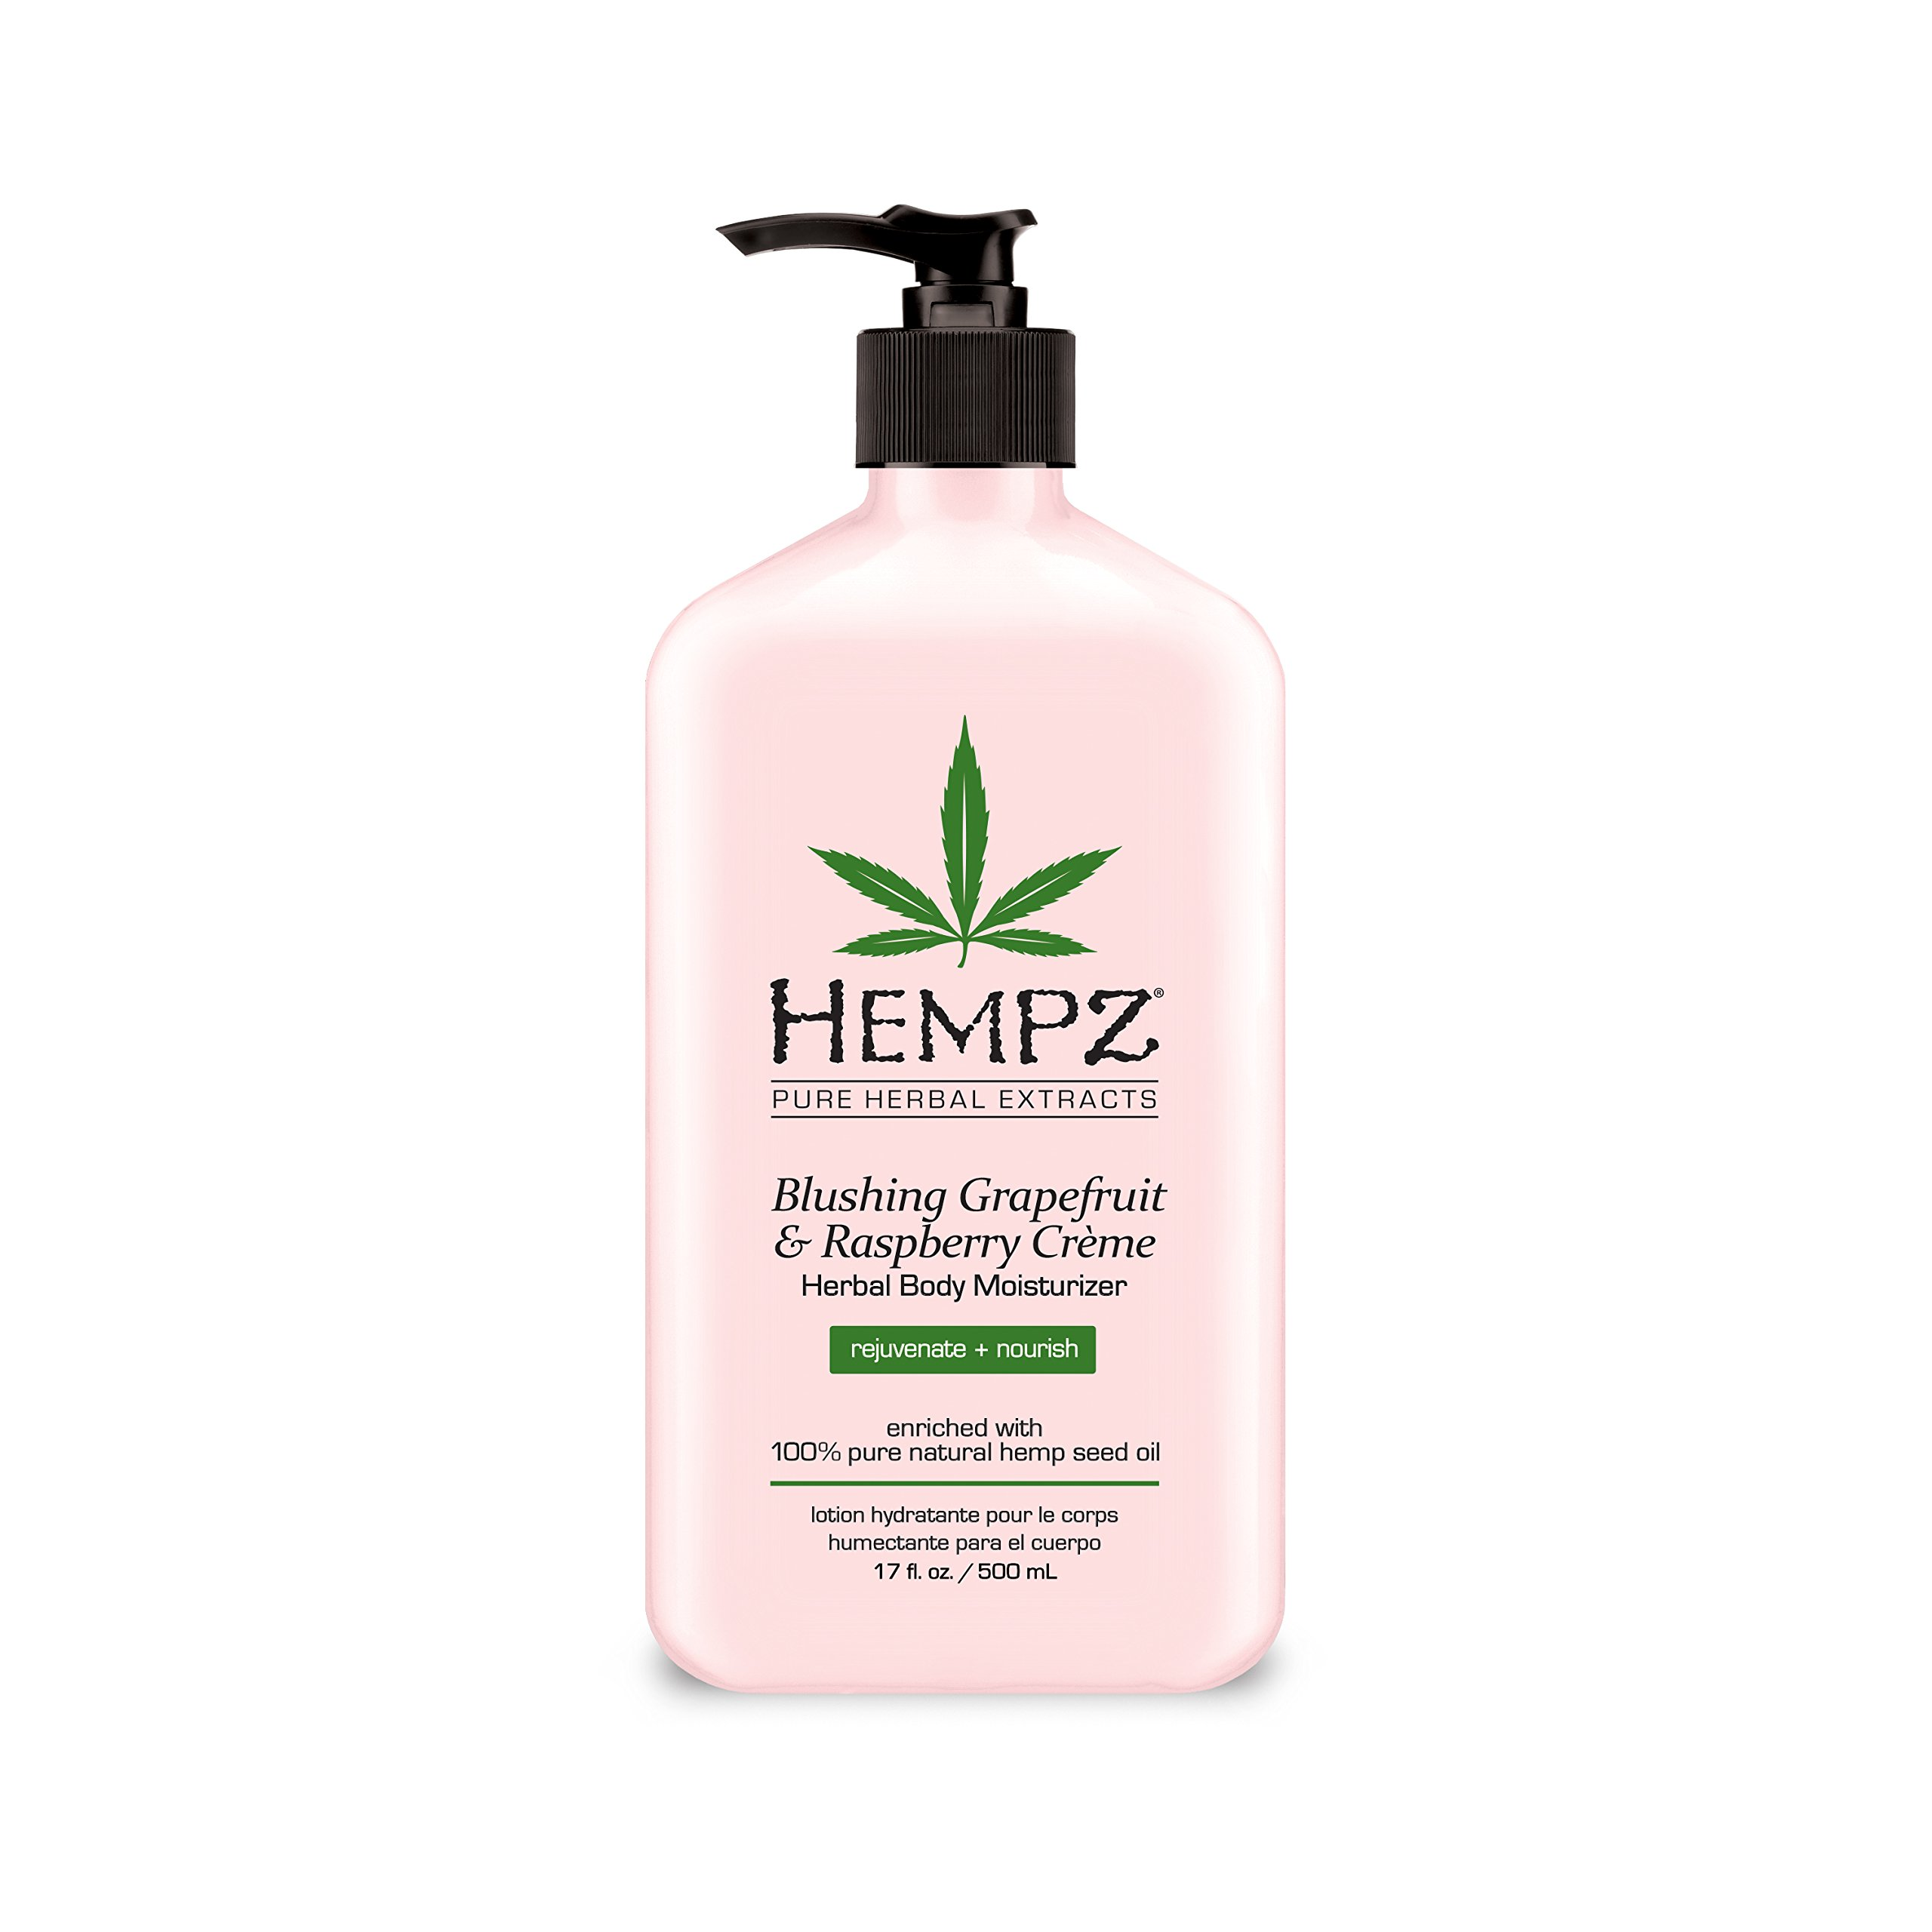 Hempz Blushing Grapefruit & Raspberry Creme Herbal Body Moisturizer Lotion - Fruit Body Cream - Pure Hempseed Oil, Shea Butter, Ginseng, Natural Extracts, Vitamins A, C, and D, Cucumber Extract by Hempz